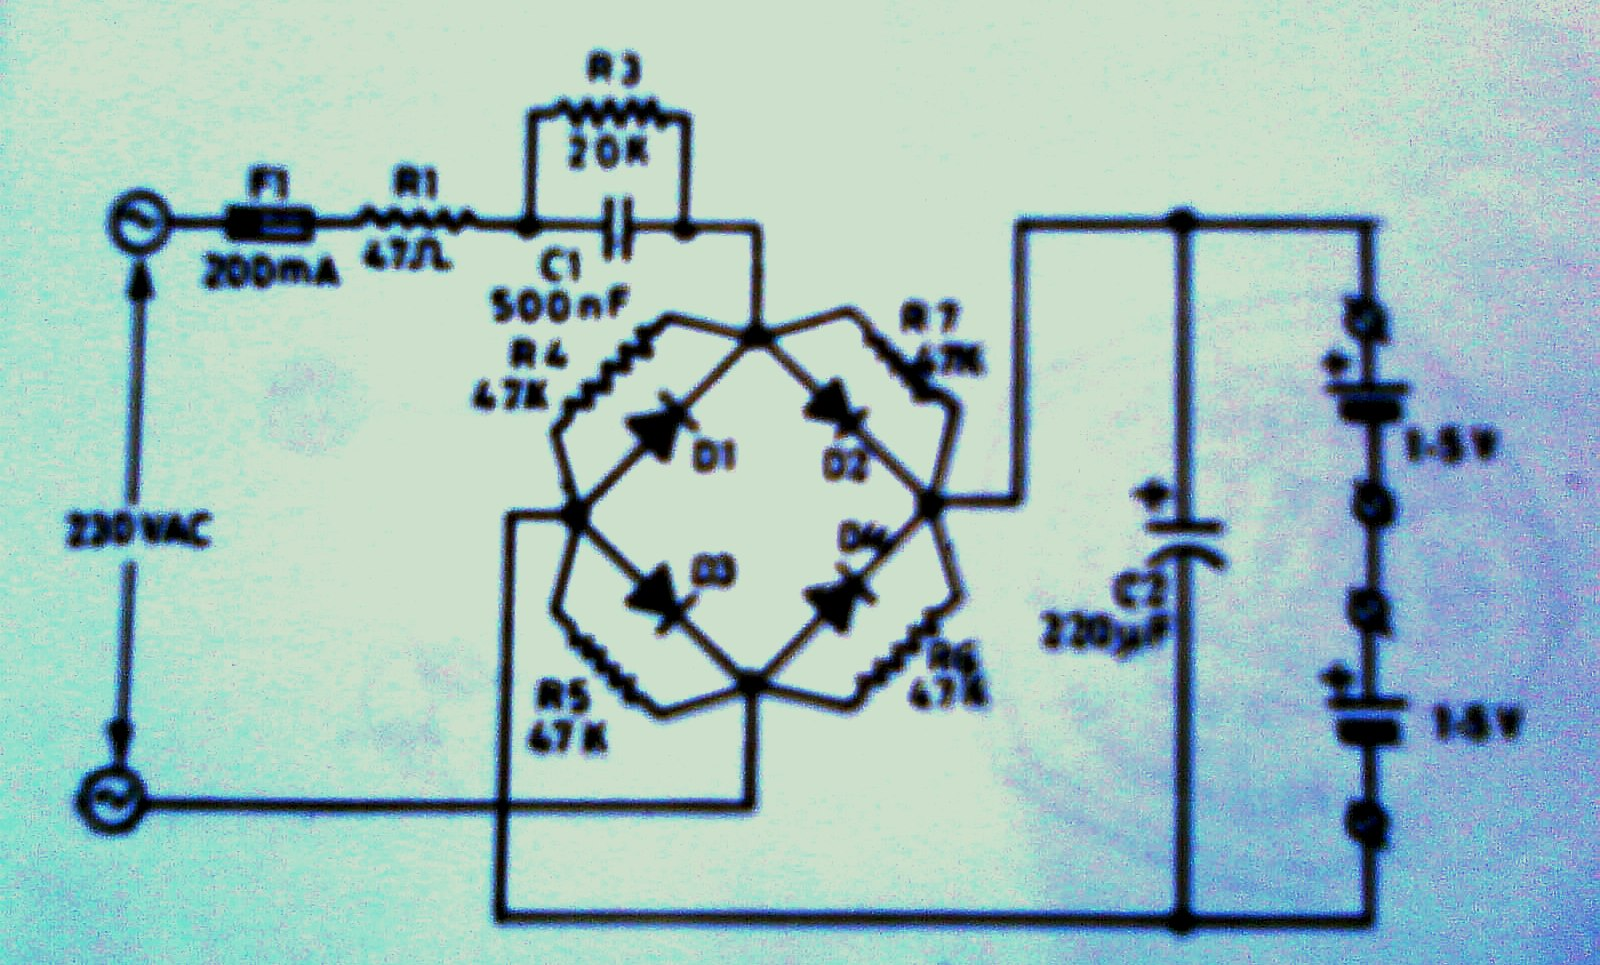 Huzoonline 2010 32w Hi Fi Audio Amplifier With Tda2050 Circuit Diagram The Schematic Austere Ni Cad Cell Charger